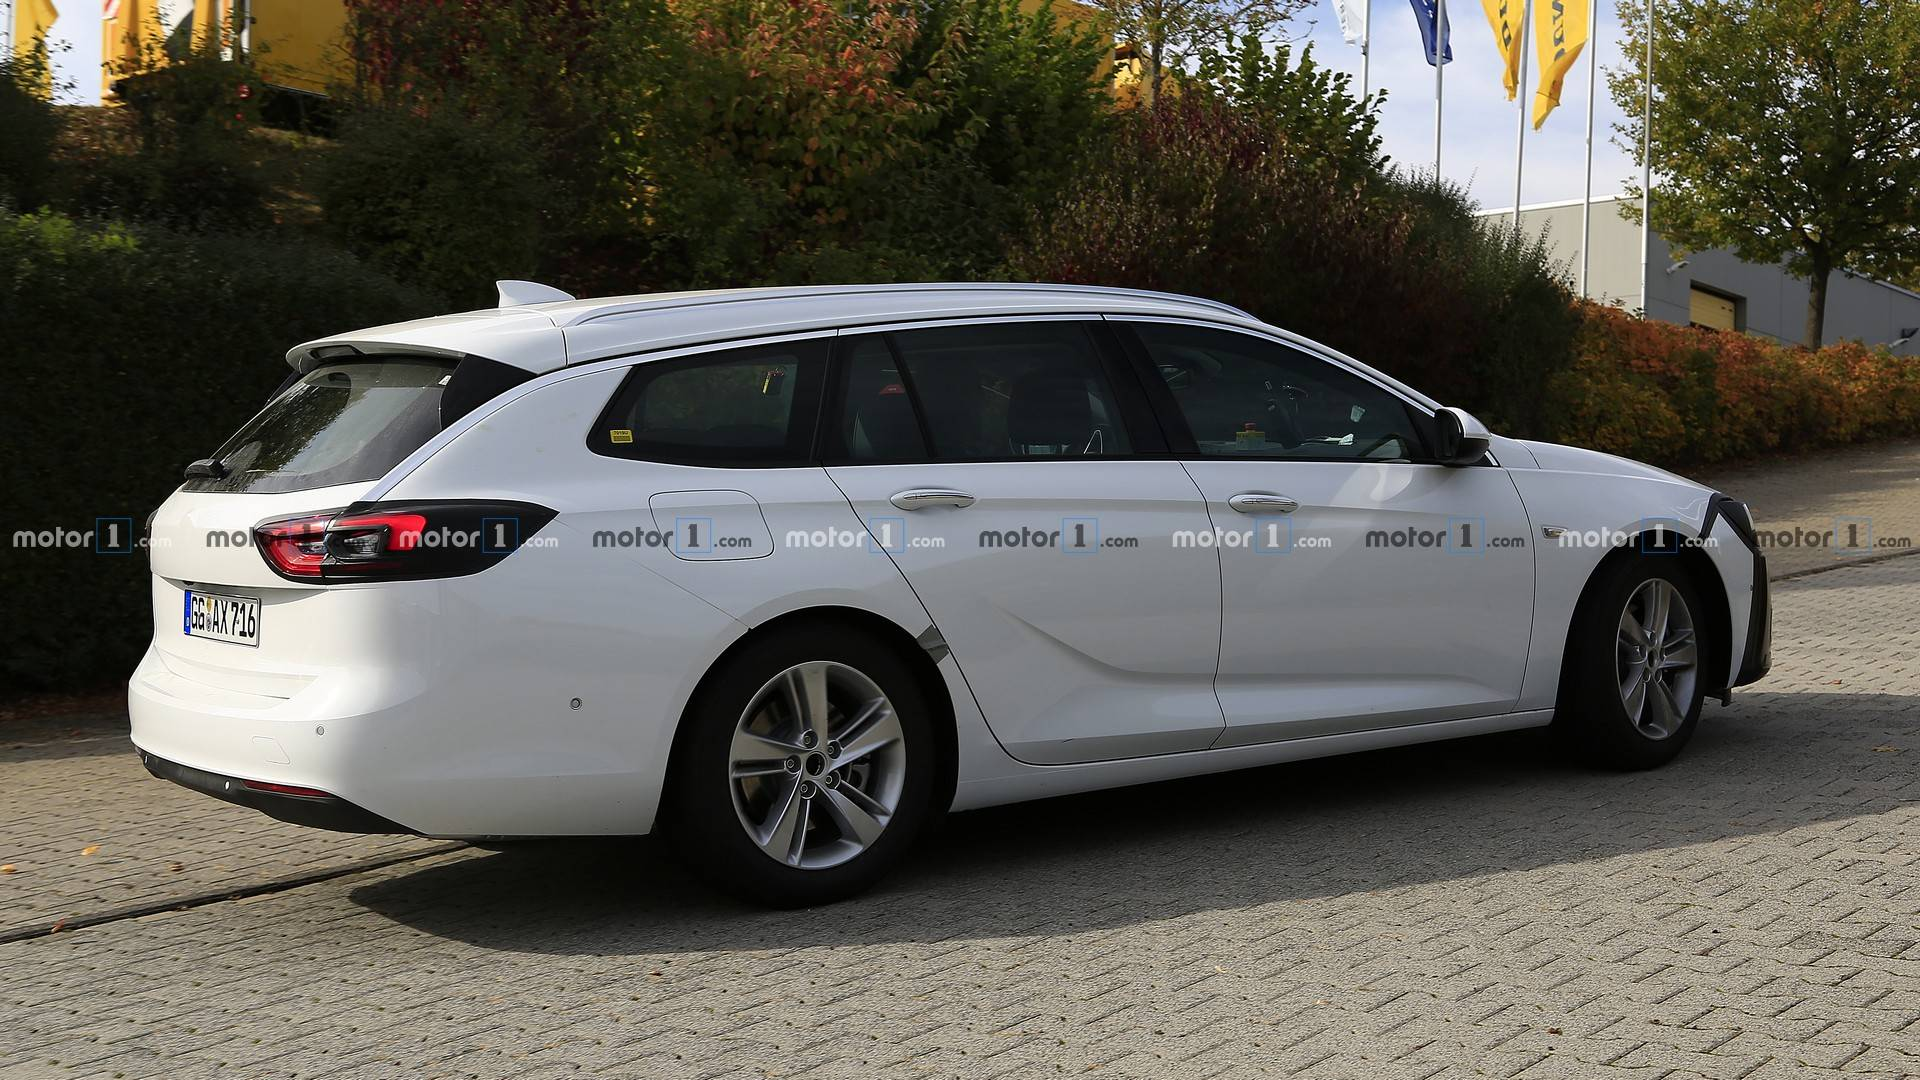 92 All New 2020 New Opel Insignia Rumors